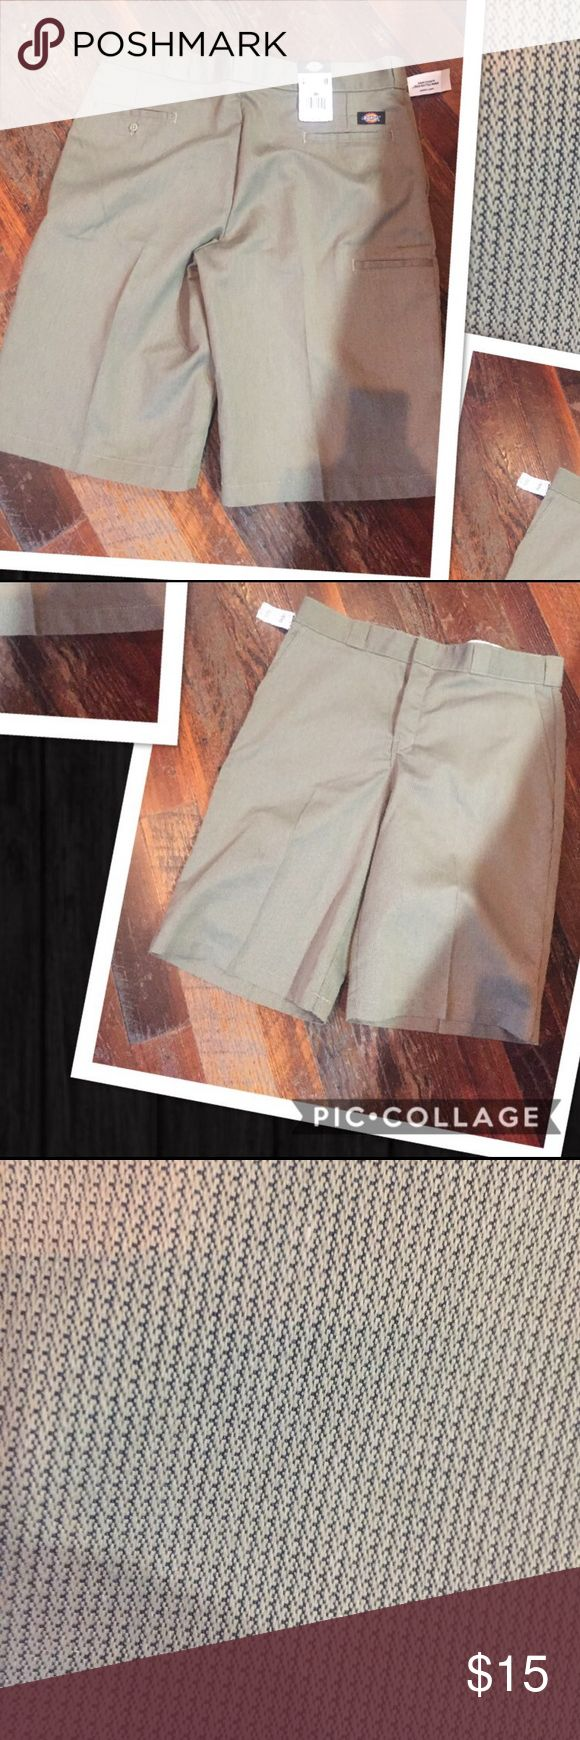 Nwt from Tillys Dickies shorts size 36 Nwt from Tillys Dickies shorts size 36  . No trades price firm Dickies Shorts Flat Front